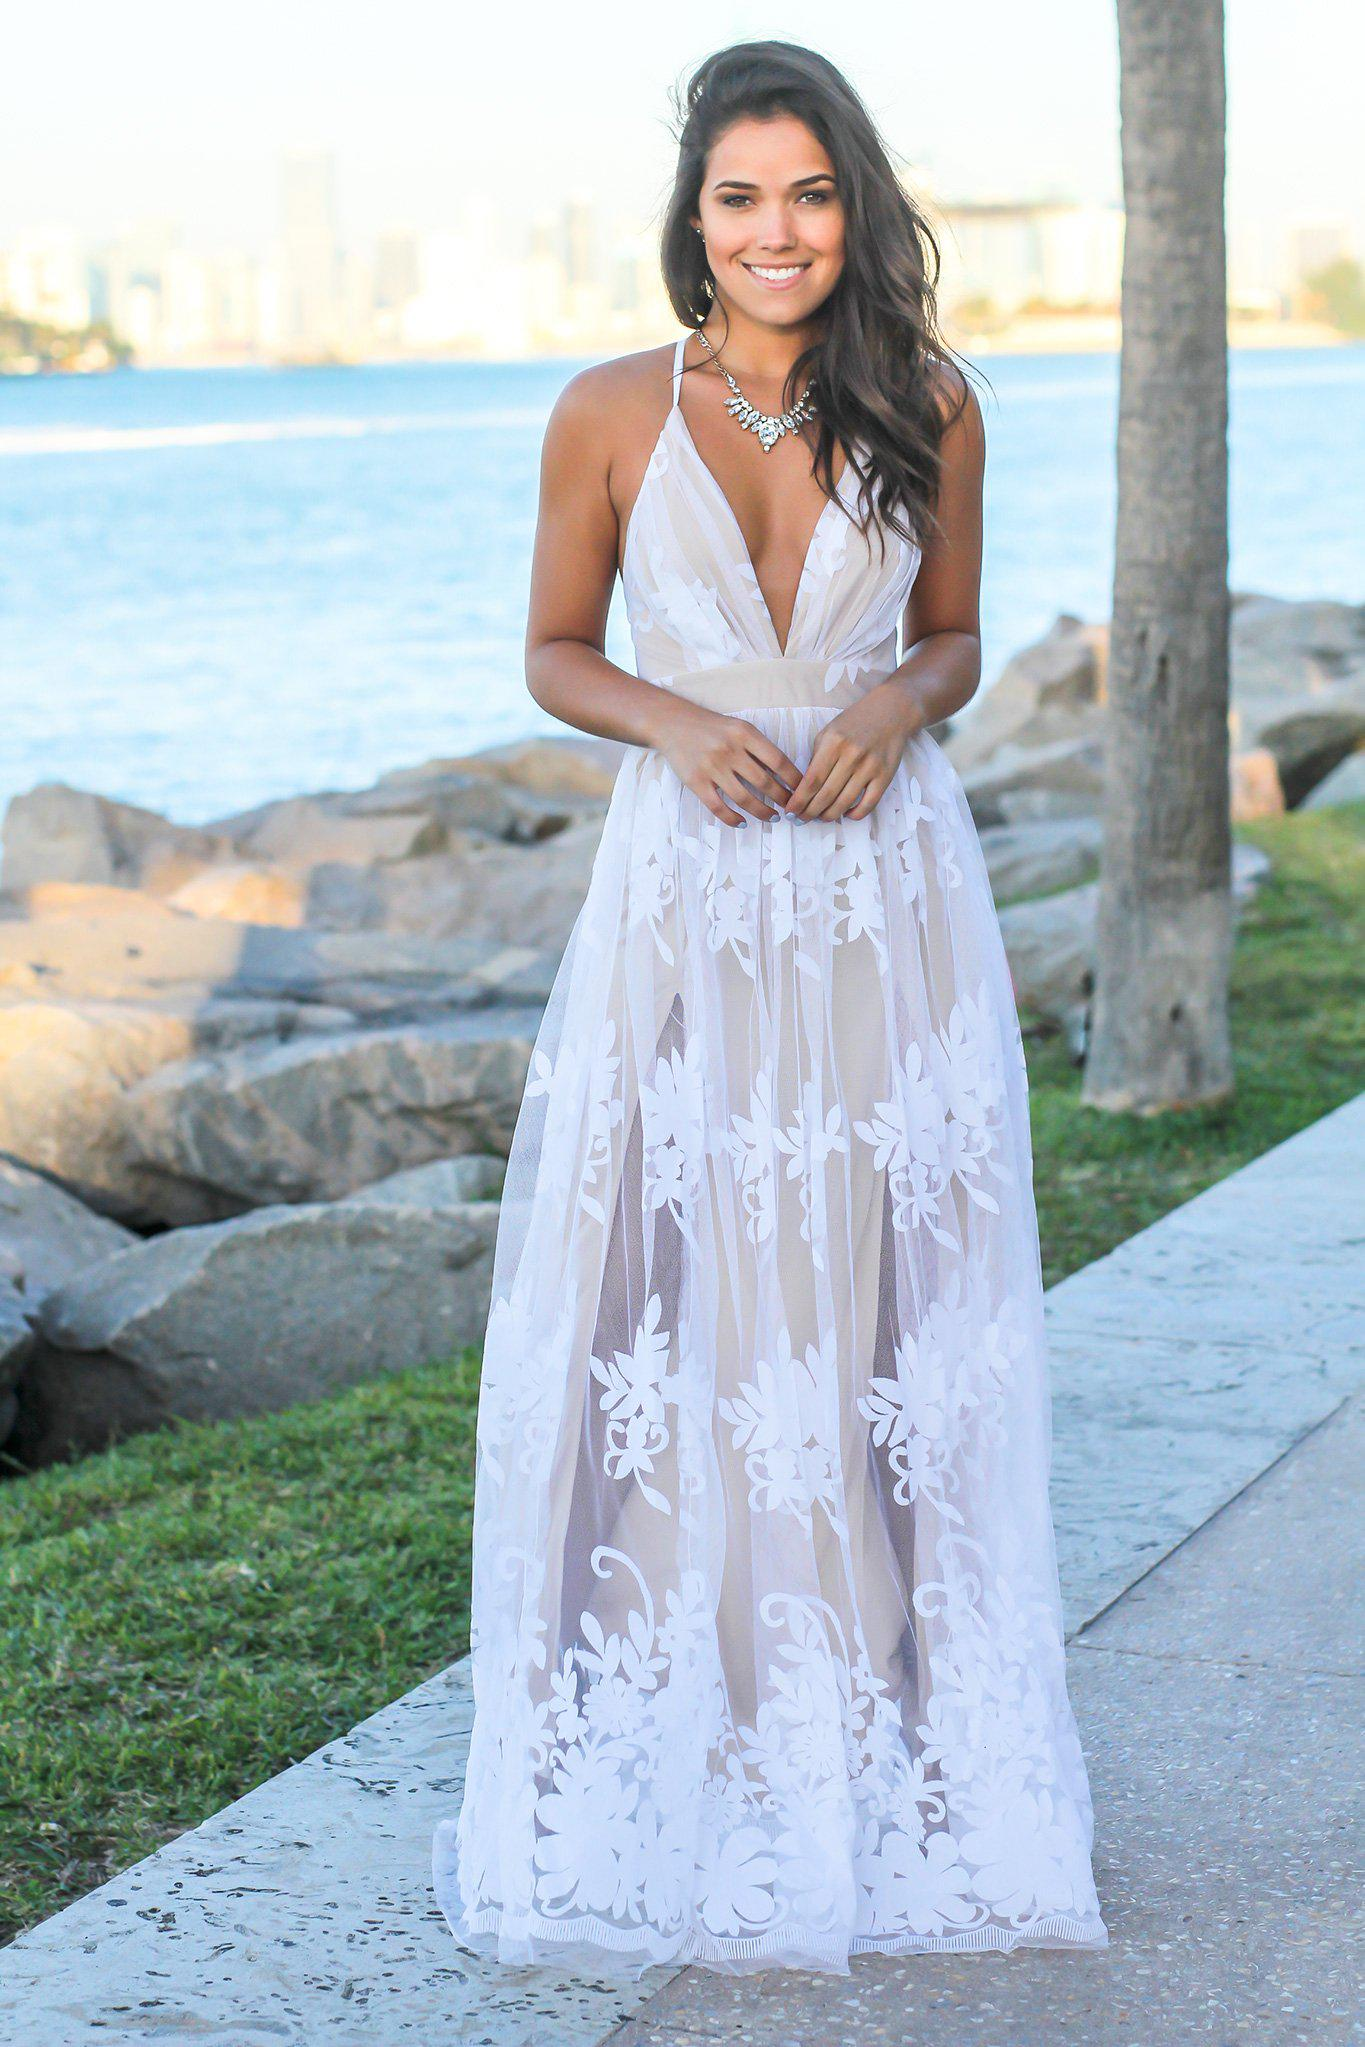 White And Beige Floral Tulle Maxi Dress With Criss Cross Back Maxi Dresses Saved By The Dress,Islamic Wedding Dresses For Sale In India